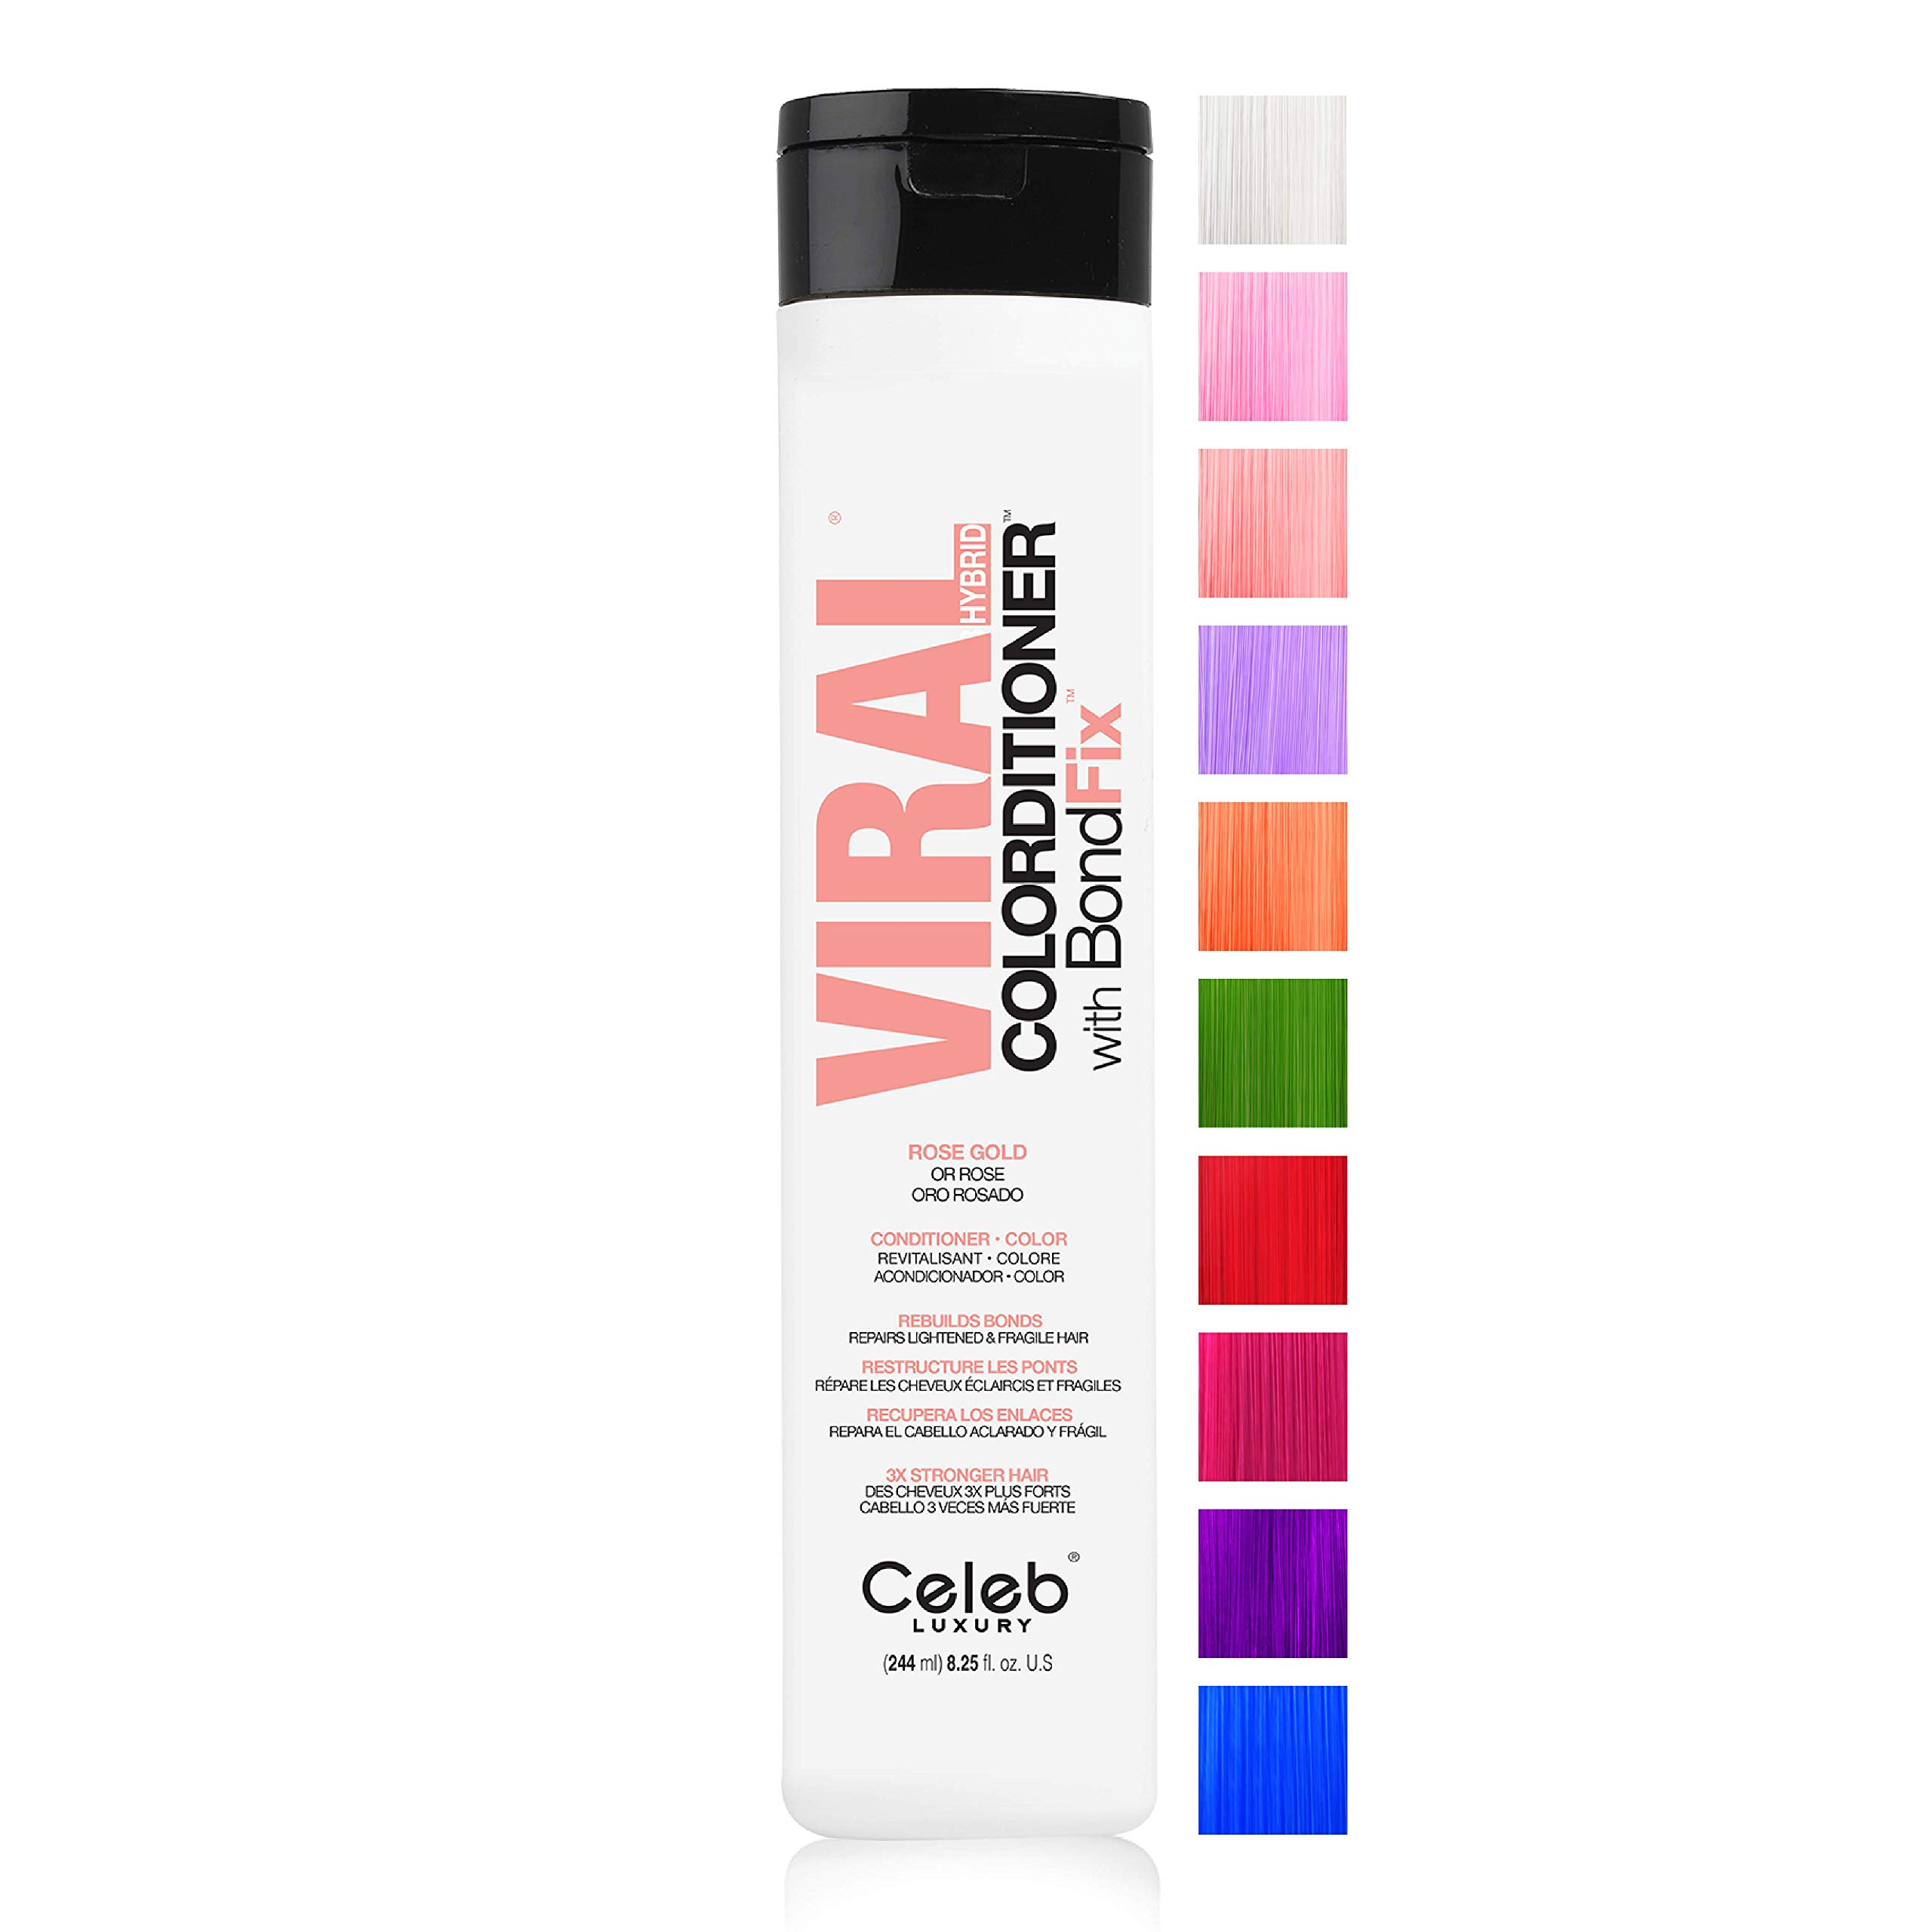 Celeb Luxury Viral Color Depositing Colorwash Shampoo or Colorditioner Conditioner + BondFix Bond Rebuilder, Clean Beauty Hair Color, Plant-Based, Vegan, Semi-Permanent Pastel Colors